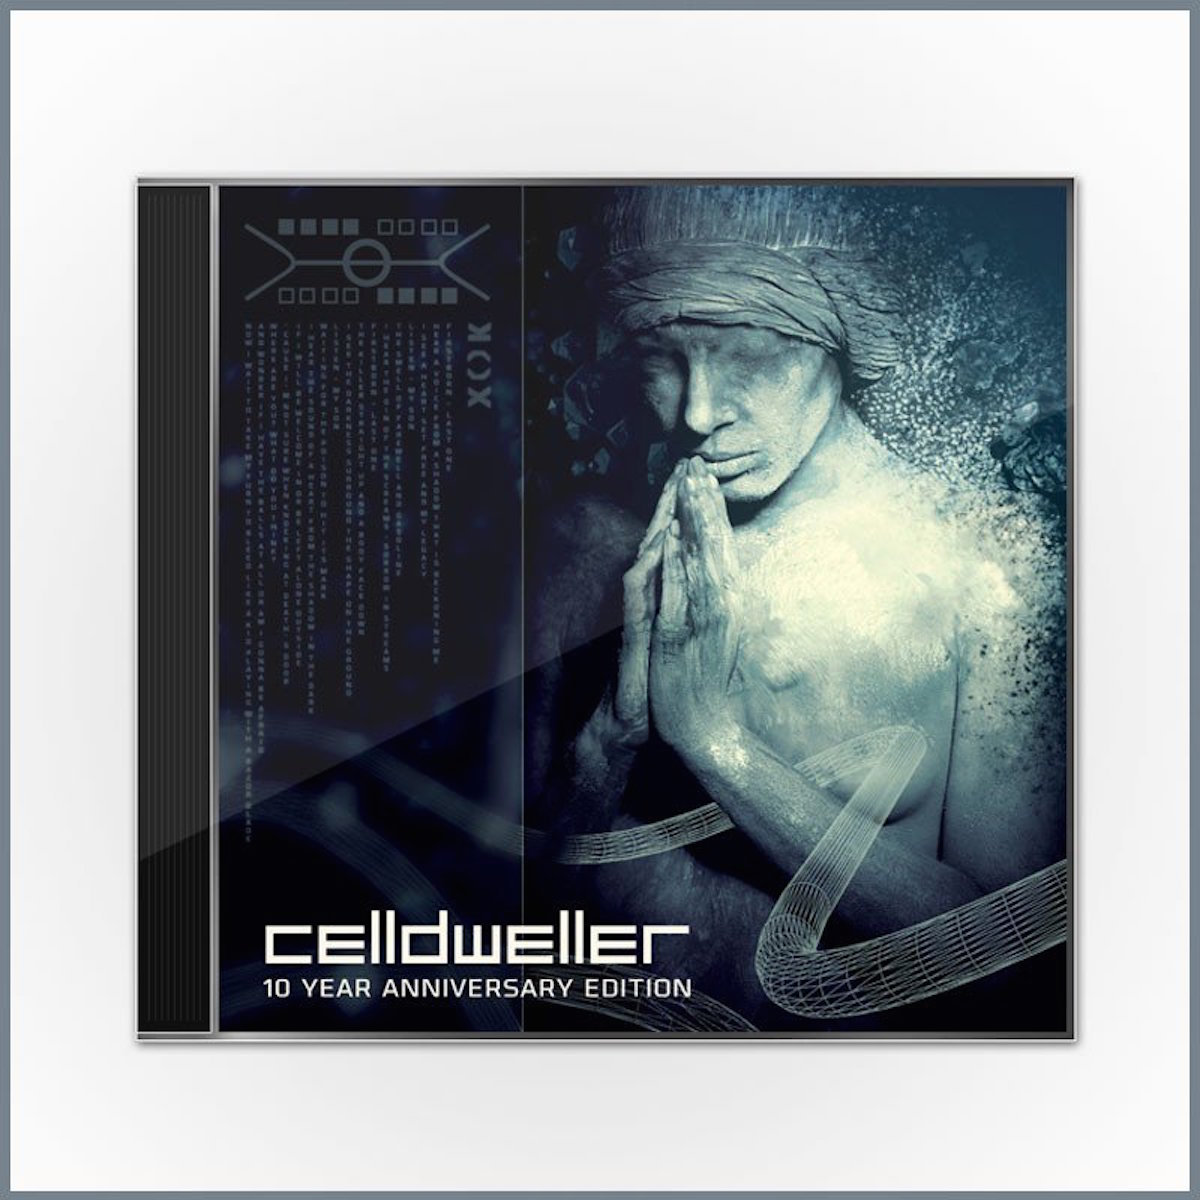 celldweller full discography download